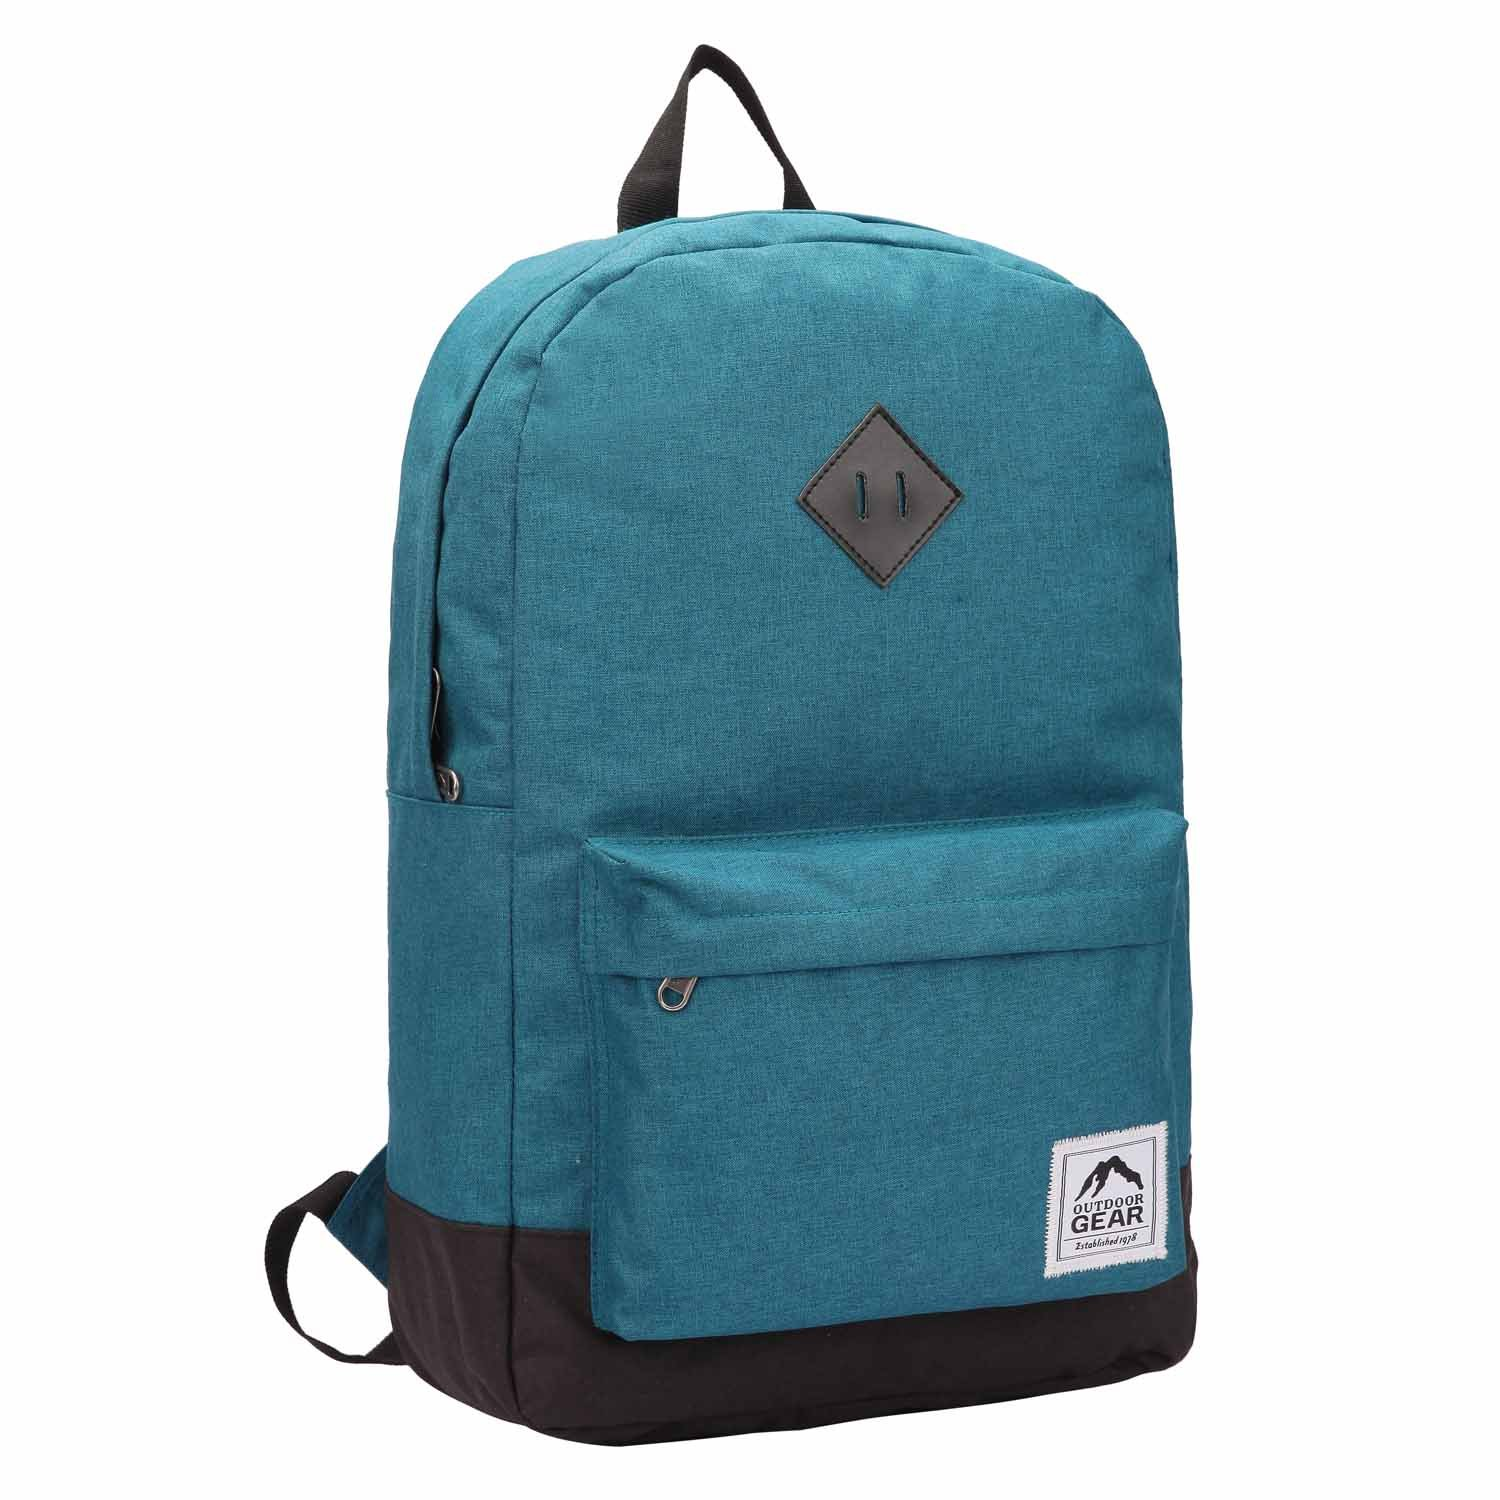 Men's Accessories Outdoor Gear Jacquard Backpack 2 Front Pockets Travel Bag Unisex Clothes, Shoes & Accessories